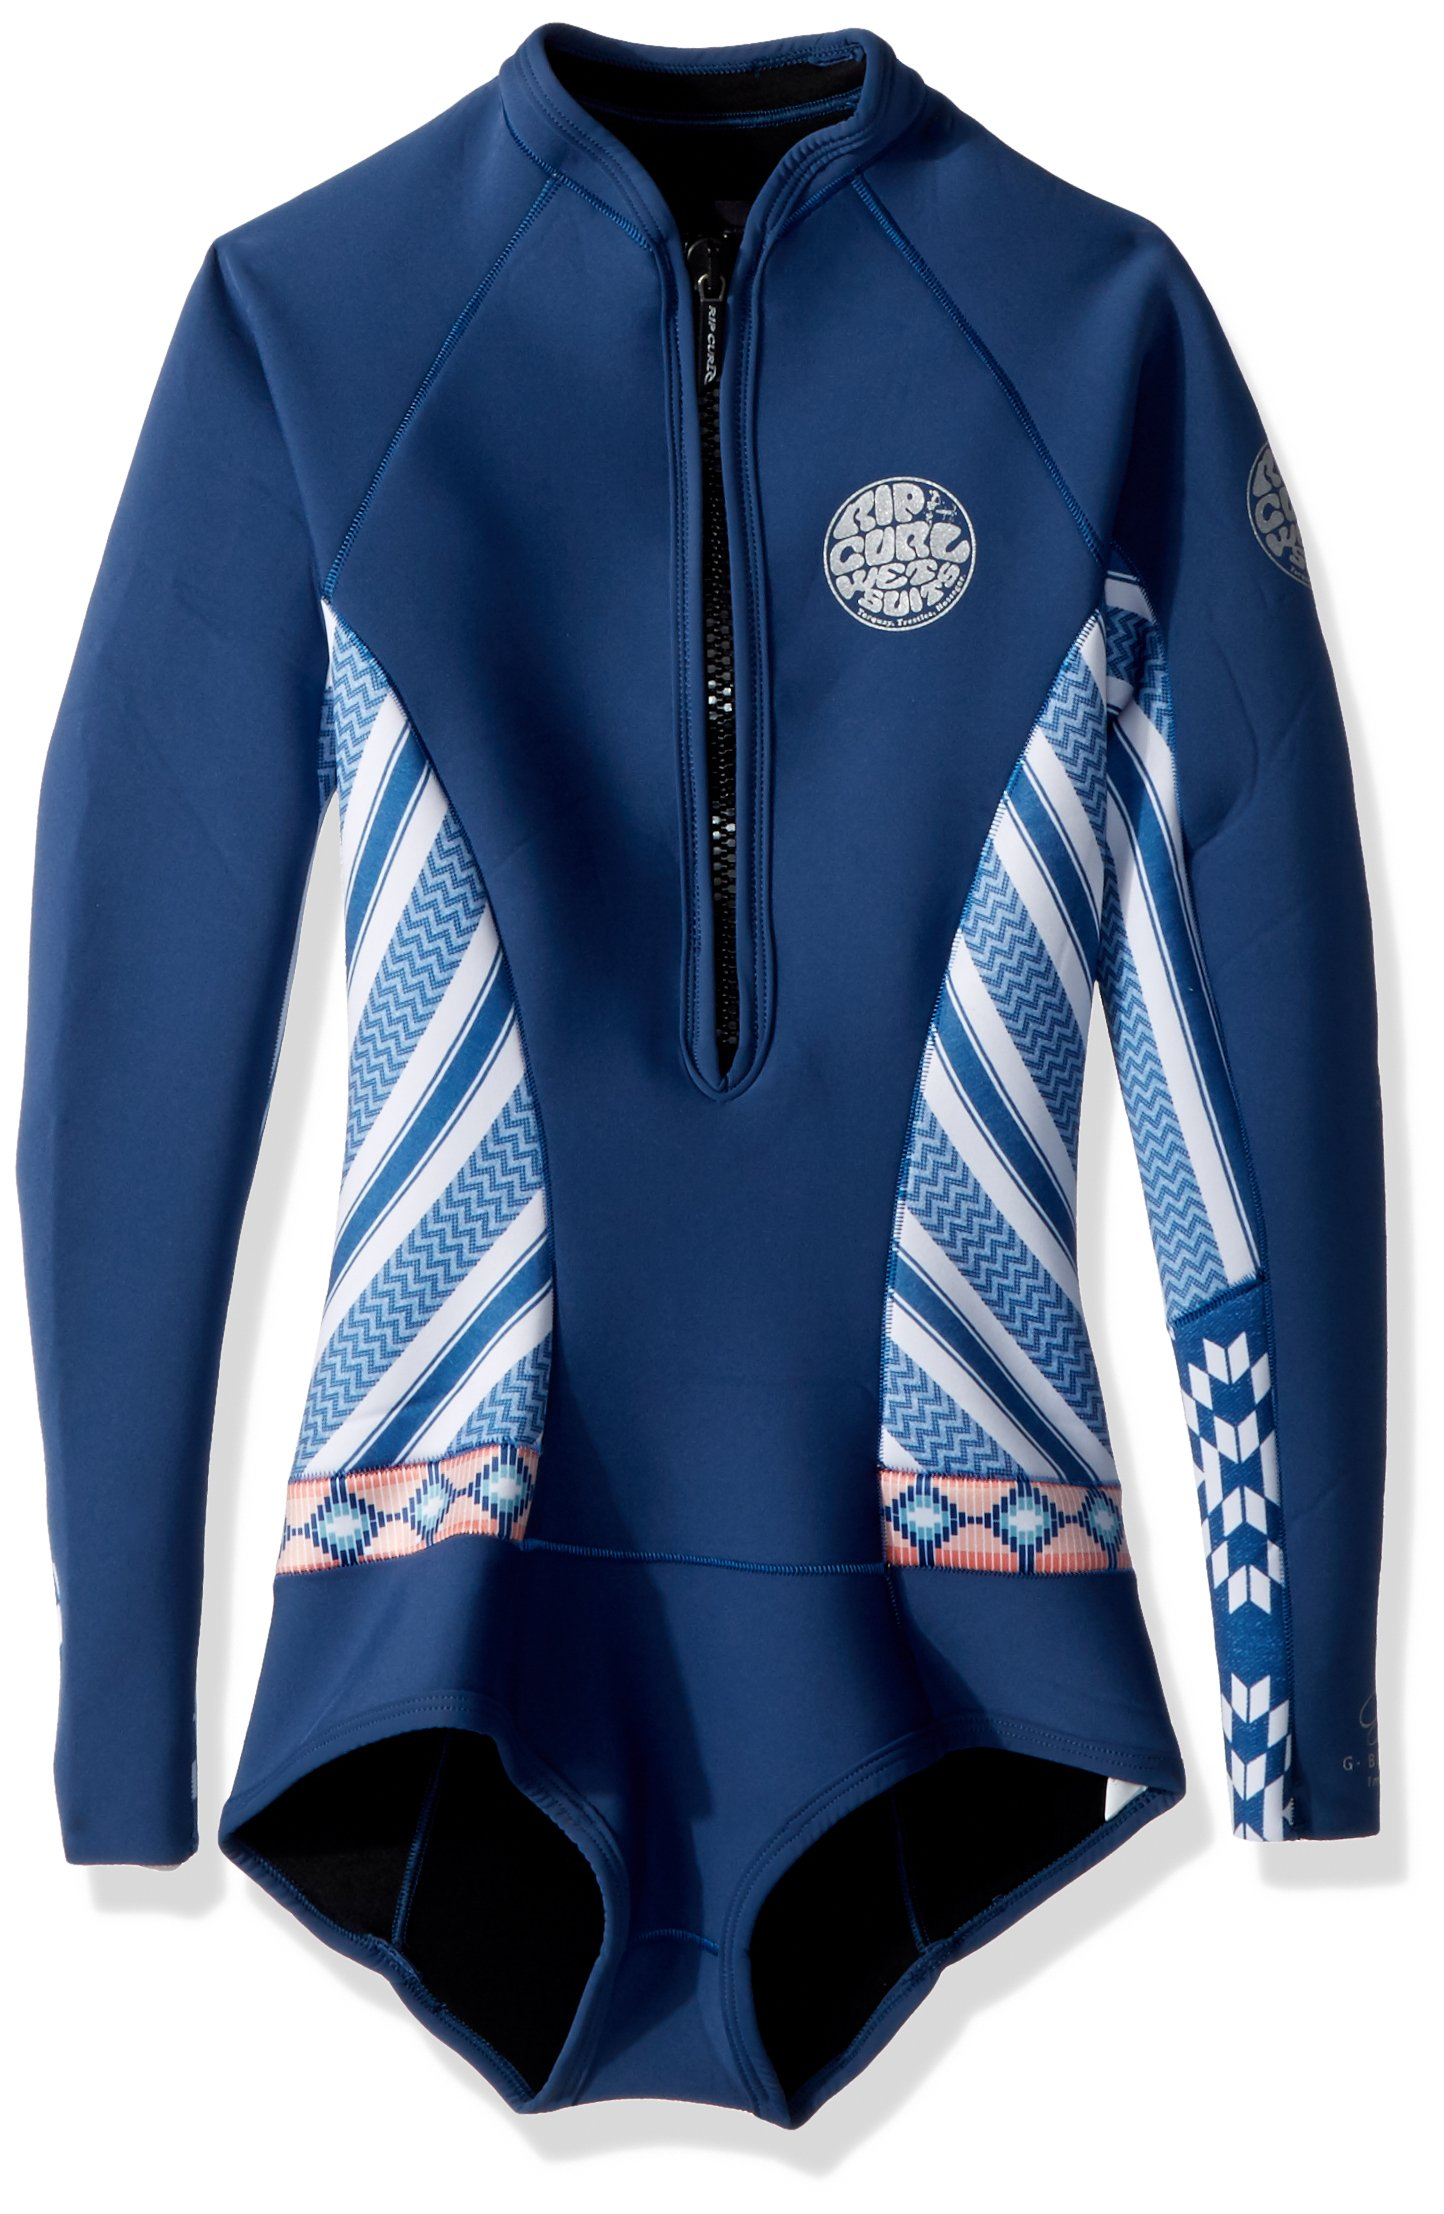 Rip Curl G Bomb Long Sleeve Spring Suit Hi Cut, Navy, Size 6 by Rip Curl